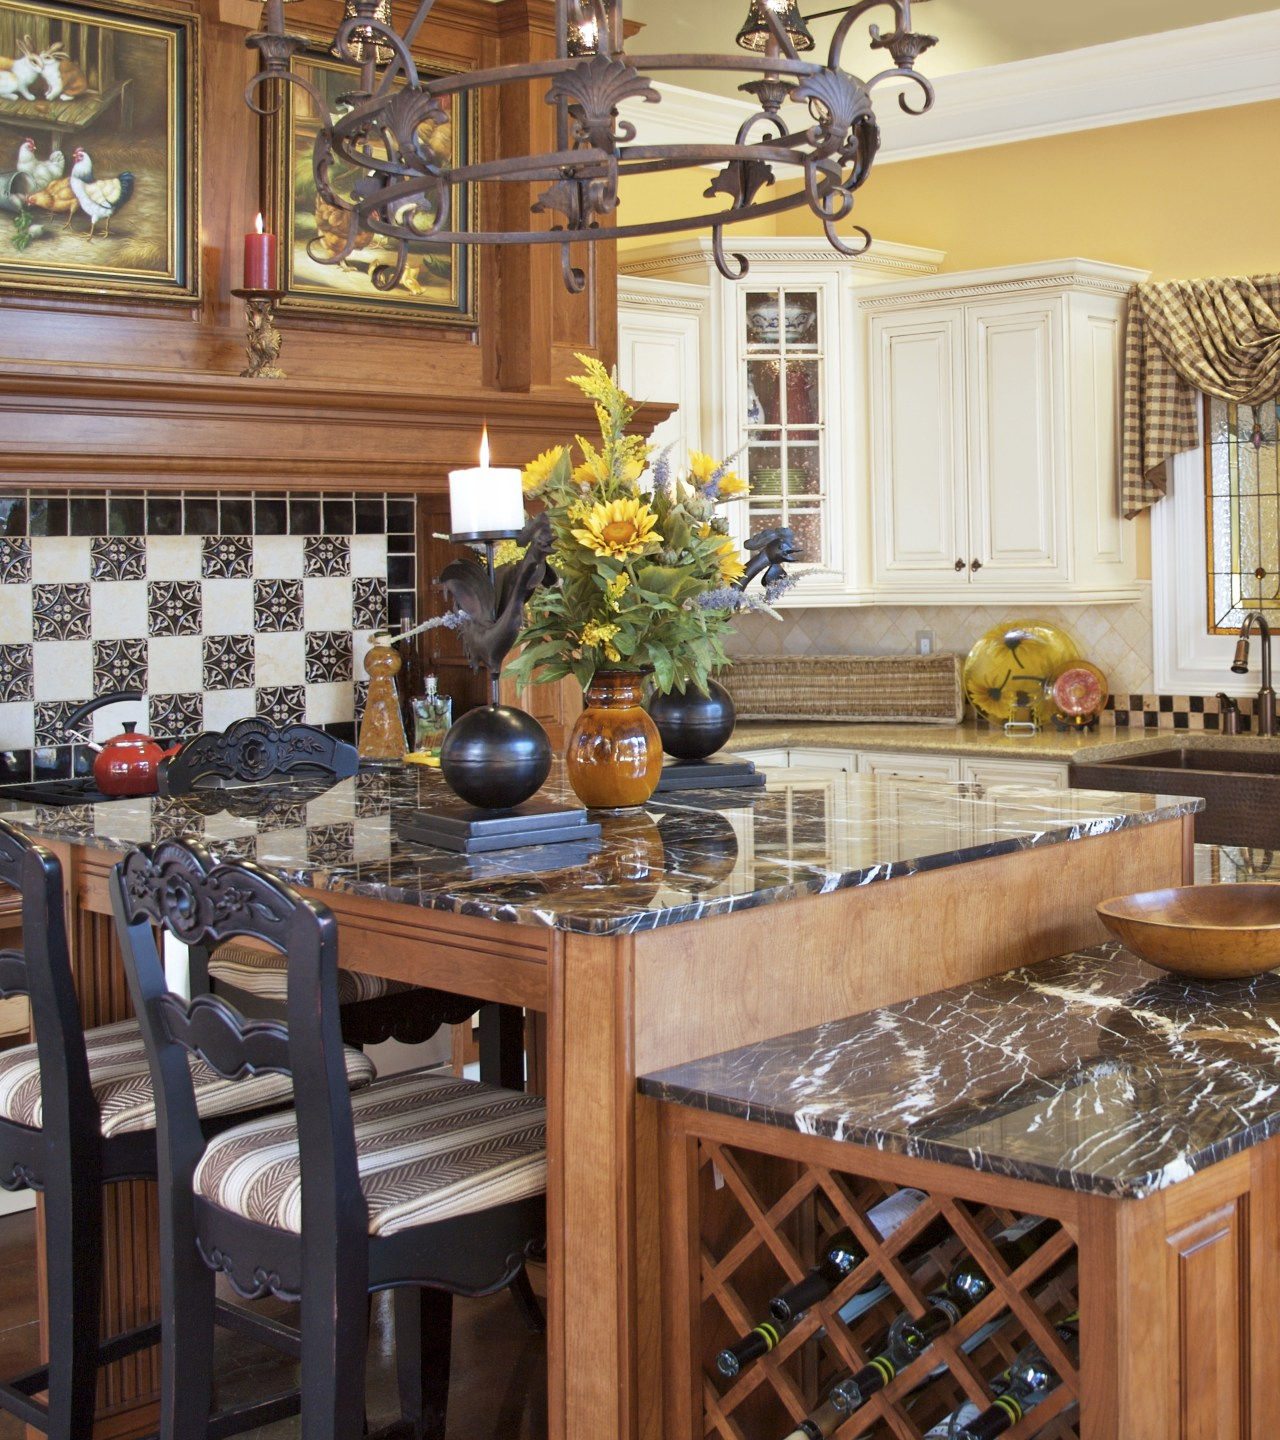 View of customised kitchens by Atlanta Kitchen and cabinetry, countertop, dining room, home, interior design, kitchen, room, table